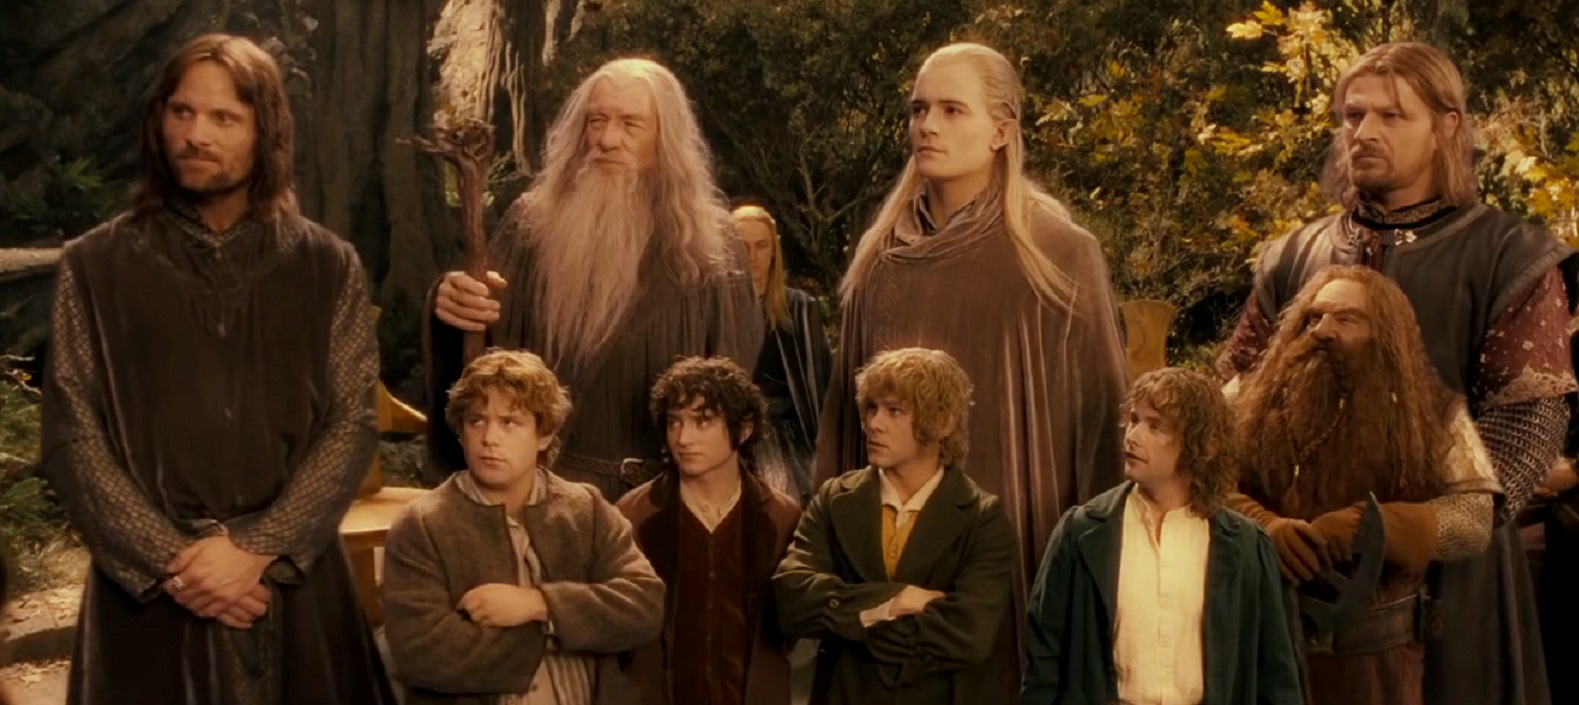 The Fellowship - Aragorn (Viggo Mortensen), Gandalf (Ian McKellen), Legolas (Orlando Bloom), Boromir (Sean Bean), Samwise Gamgee (Sean Astin), Frodo Baggins (Elijah Wood), Merry Brandybuck (Dominic Monaghan), Pippin Took (Billy Boyd) and Gimli (John Rhys-Davies) in The Lord of the Rings: The Fellowship of the Ring (2001)